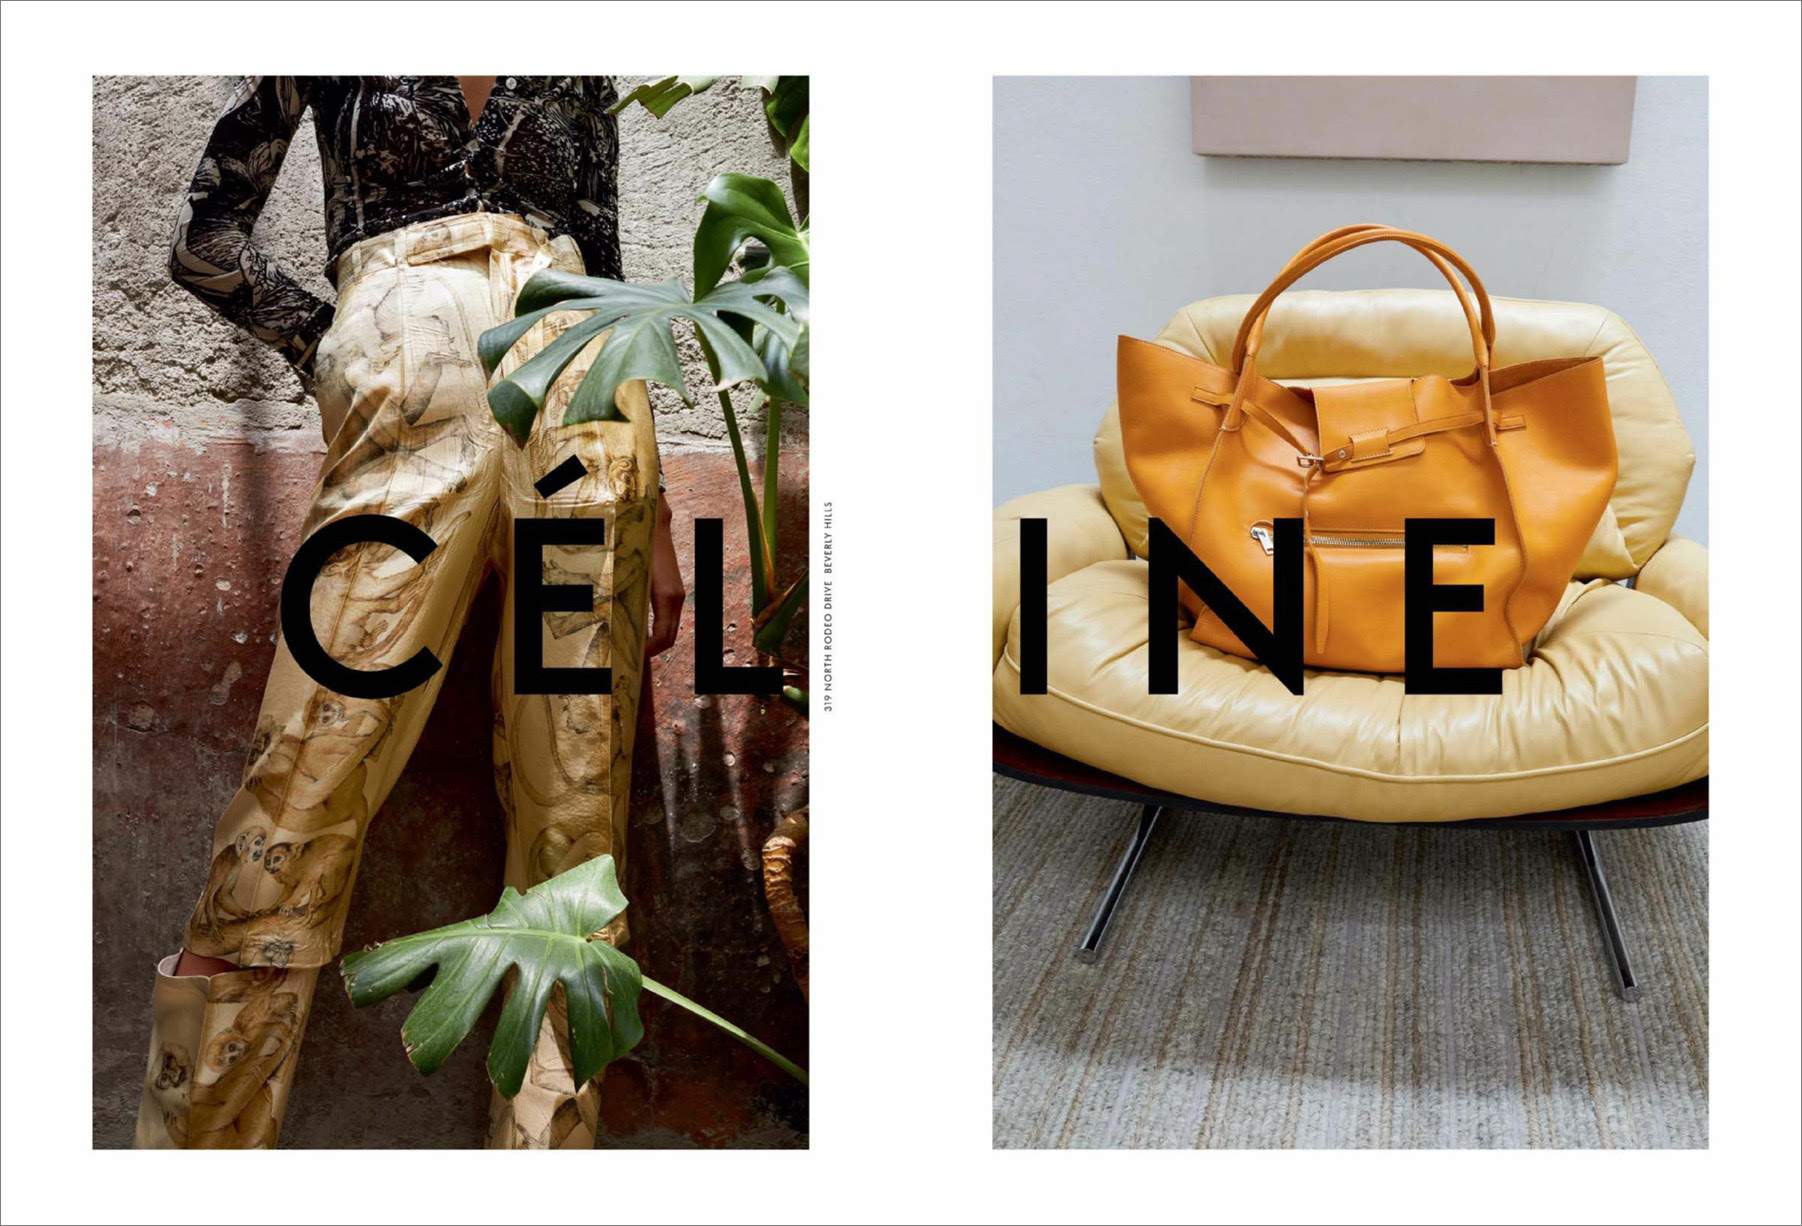 http://theimpression.com/wp-content/uploads/Celine-fall-2017-ad-campaign-the-impression-01_1.jpg